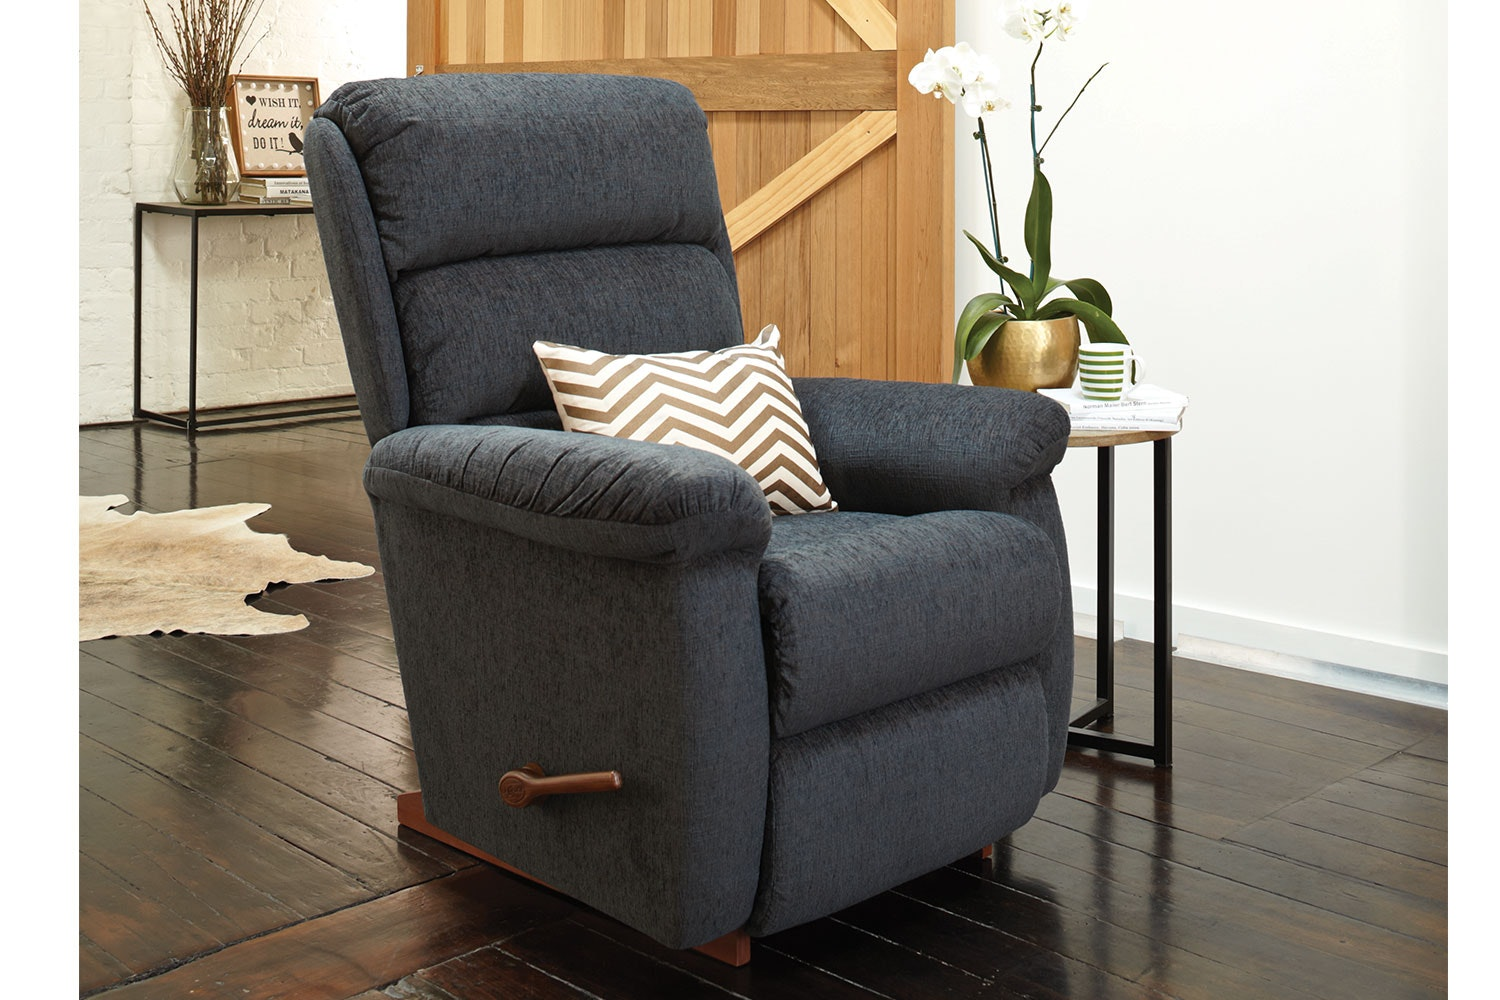 Rapids Fabric Recliner Chair - Extra Large by La-Z-Boy